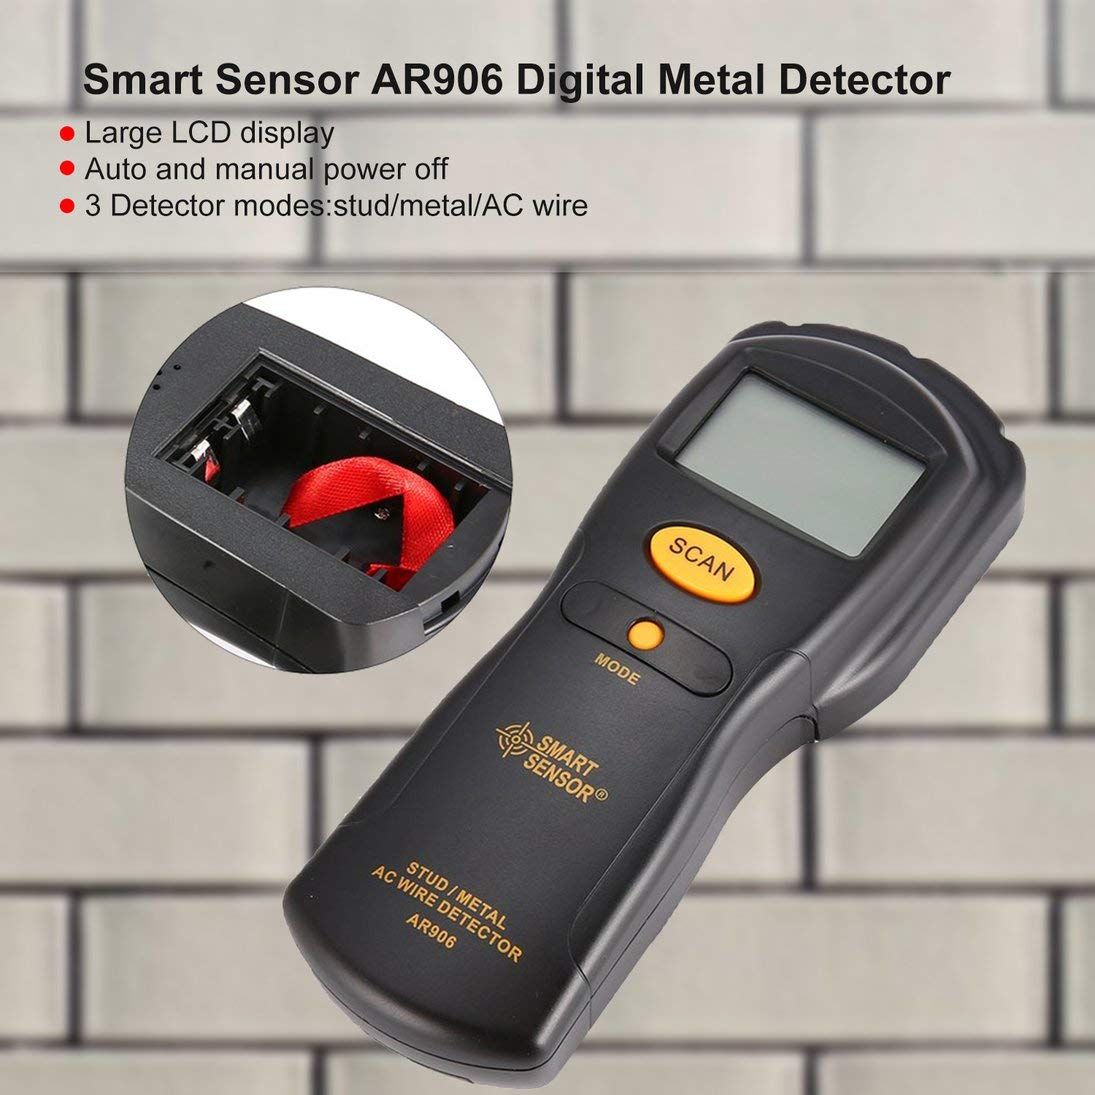 Smart Sensor AR906 Digital Metal Detector Metal Studs AC Wire Detect Wall Scanner Electric Box Finder Wall Detector: Amazon.es: Bricolaje y herramientas